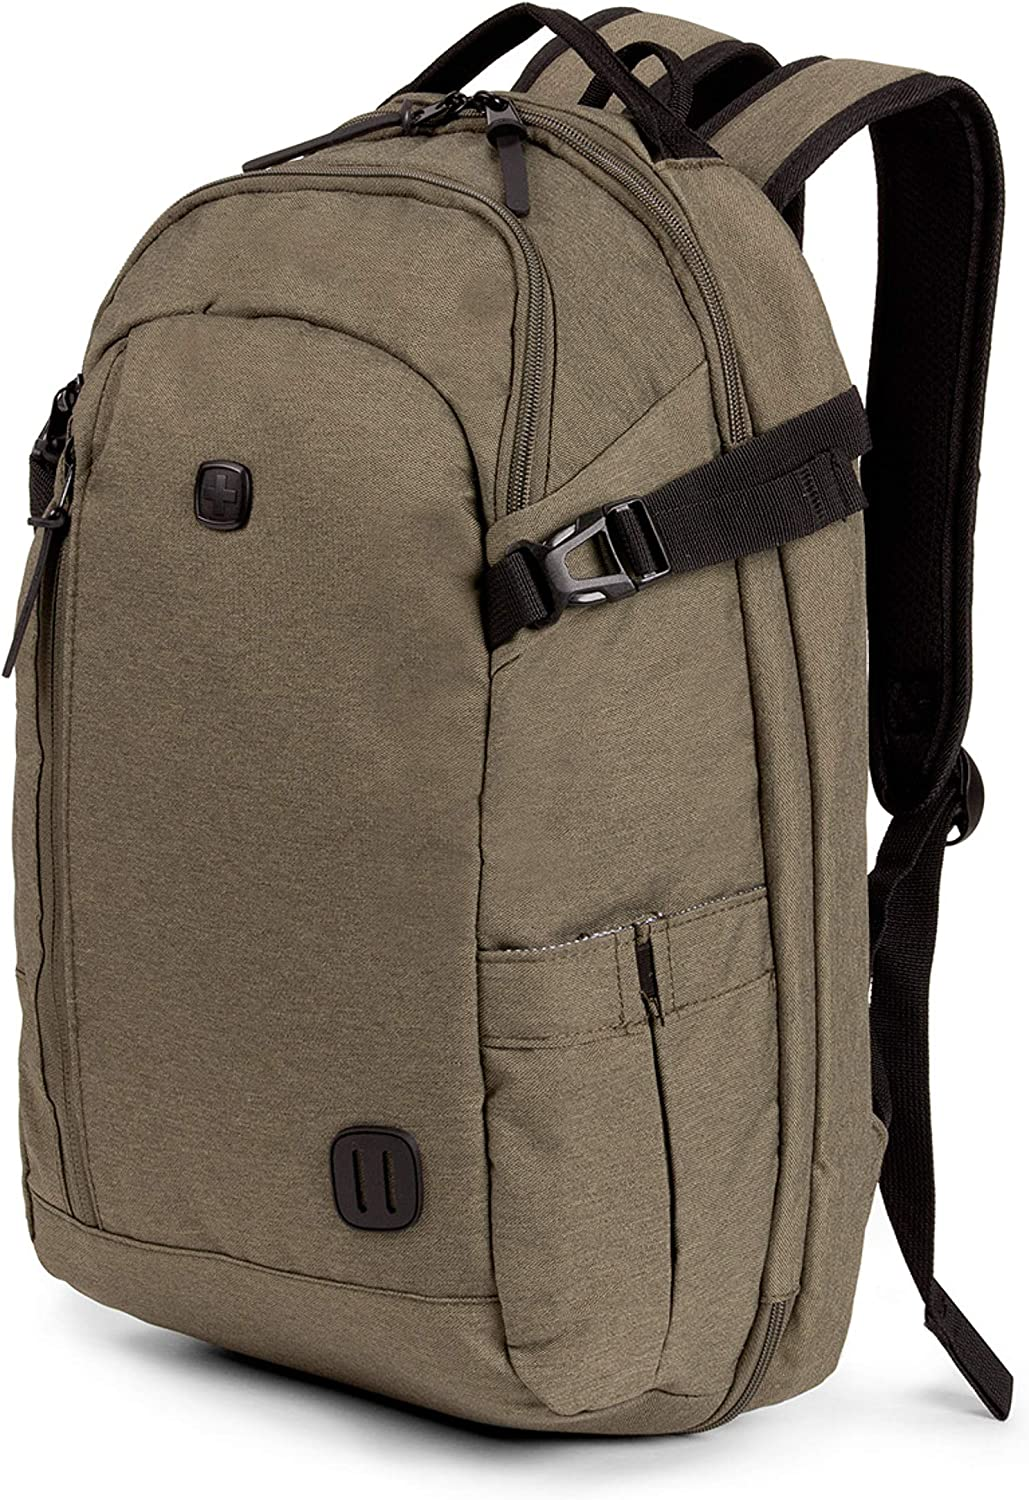 SWISSGEAR Hybrid 15-inch Laptop Backpack | Travel, Work School | Men's and Women's - Olive